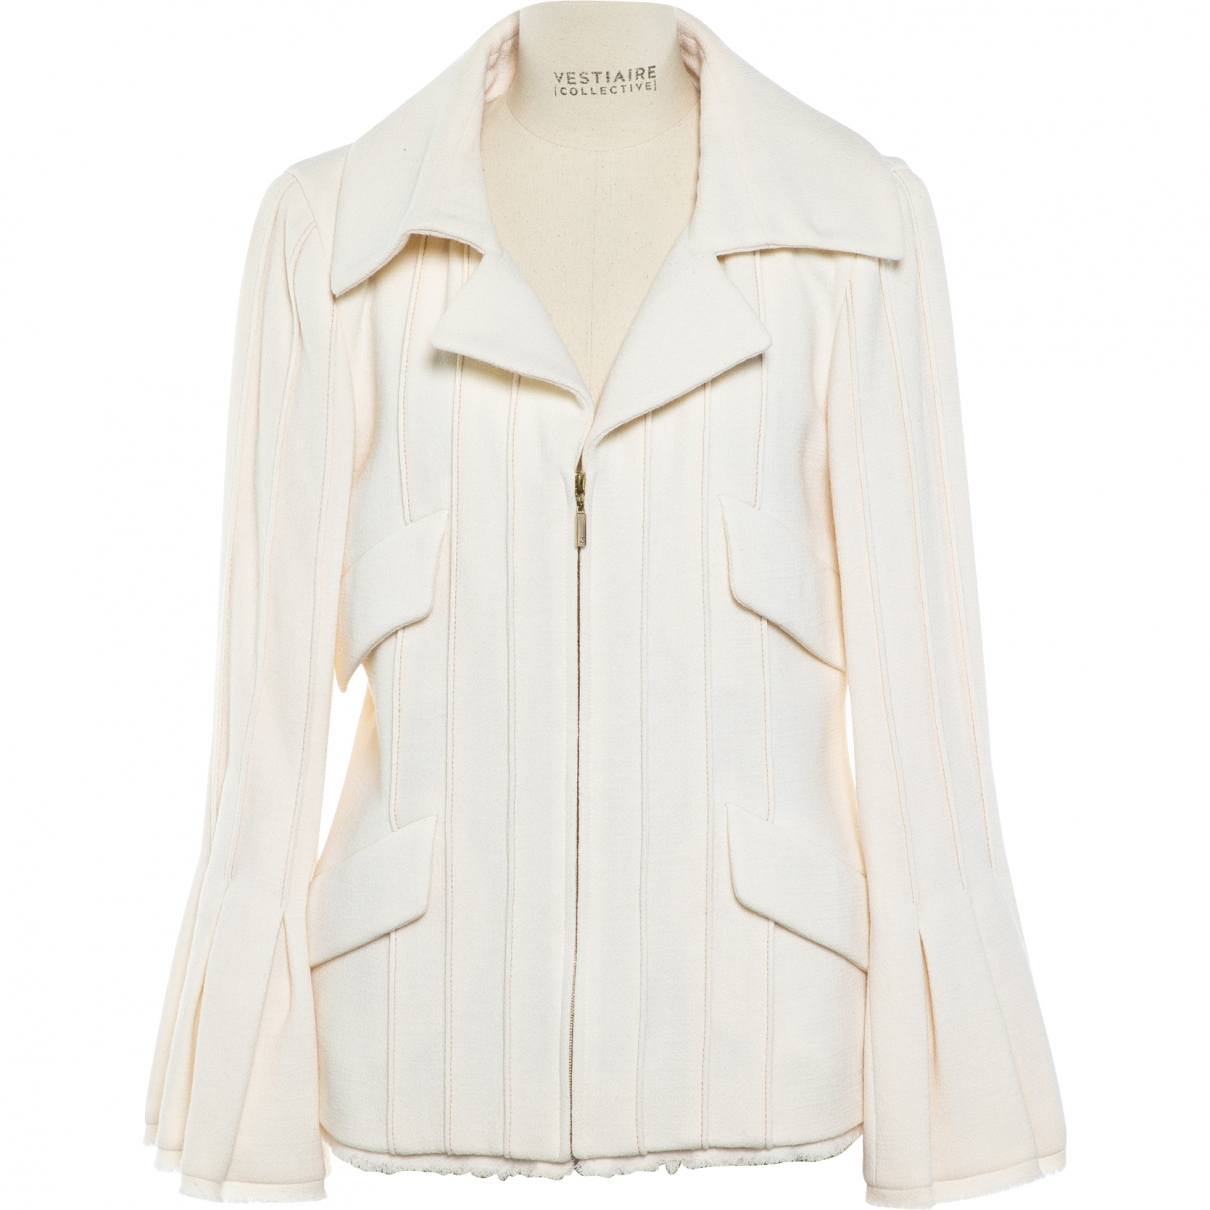 Chanel \N Ecru Wool jacket for Women 36 FR